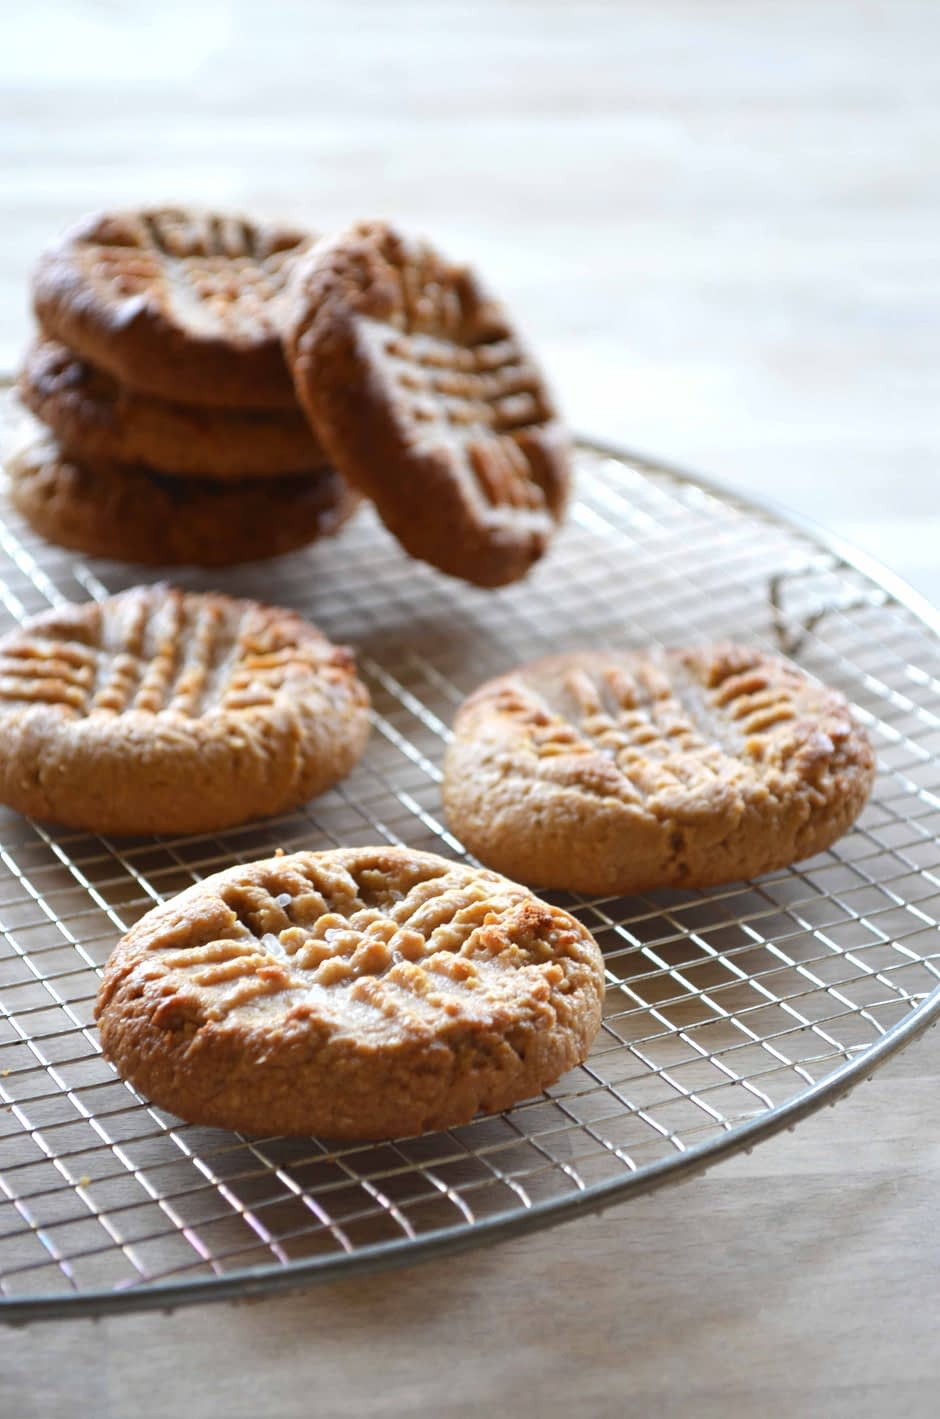 Salted peanut butter cookies. Photo and recipe by That Healthy Kitchen